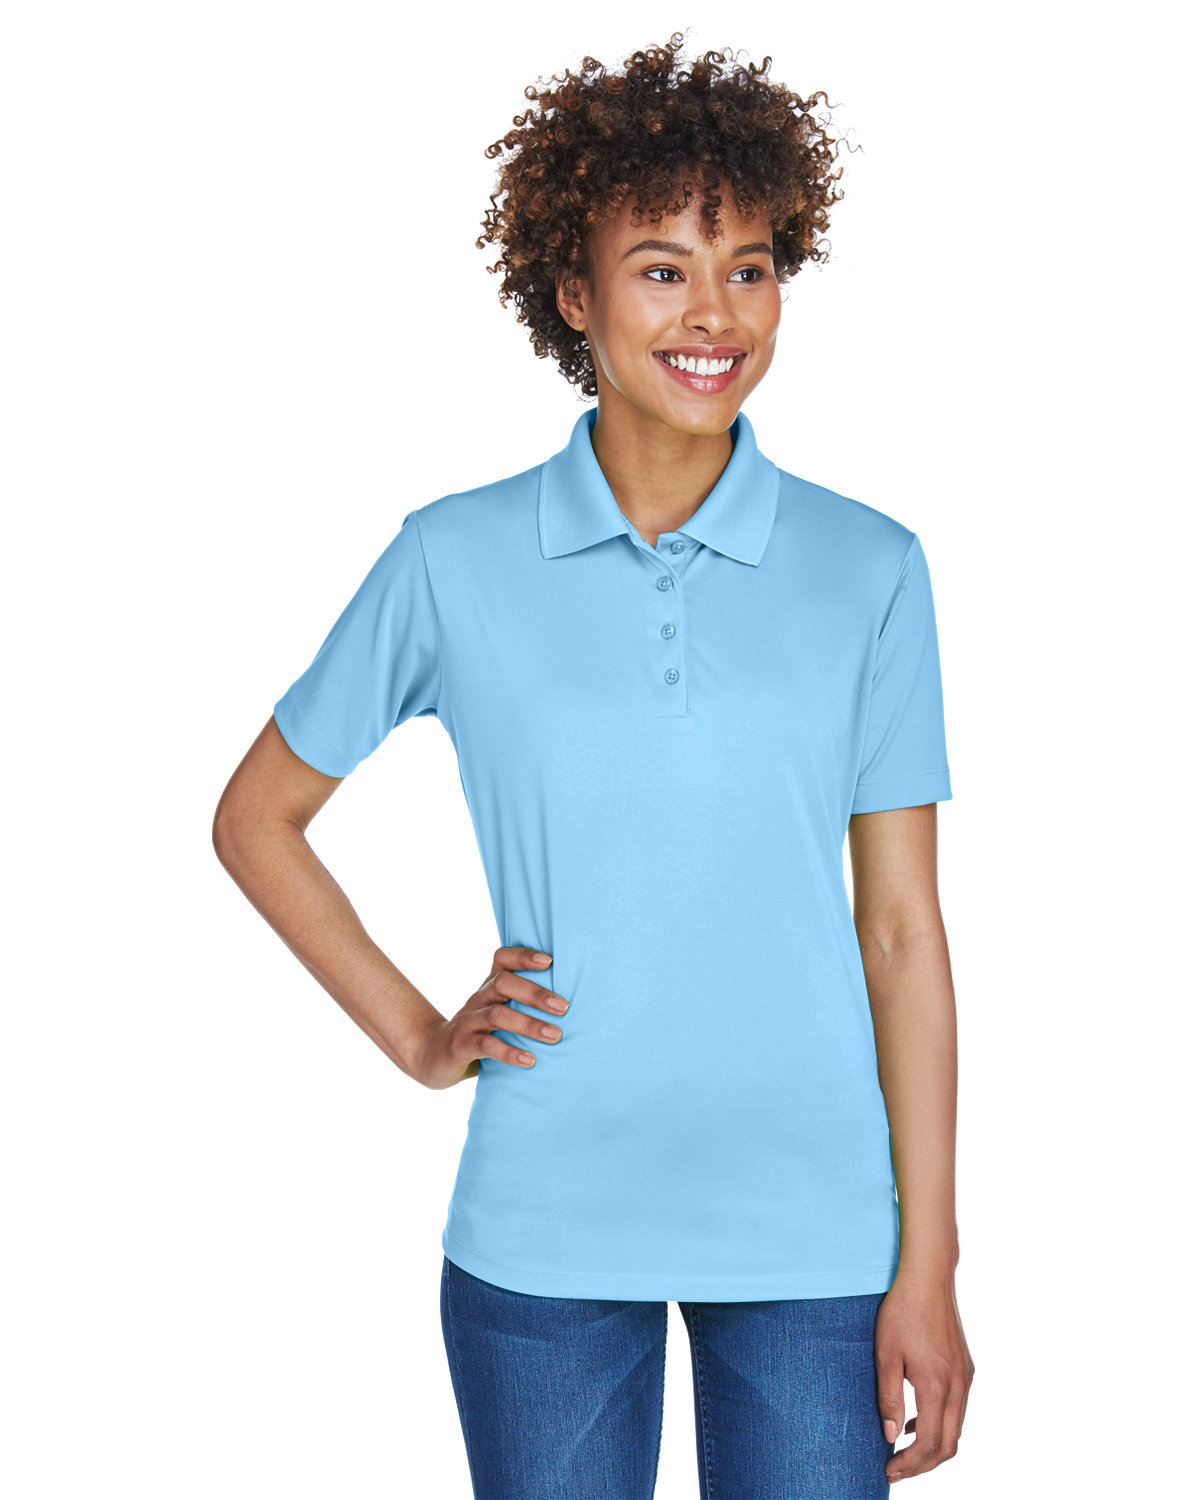 UltraClub Ladies' Cool & Dry 8-Star Elite Performance Interlock Polo COLUMBIA BLUE